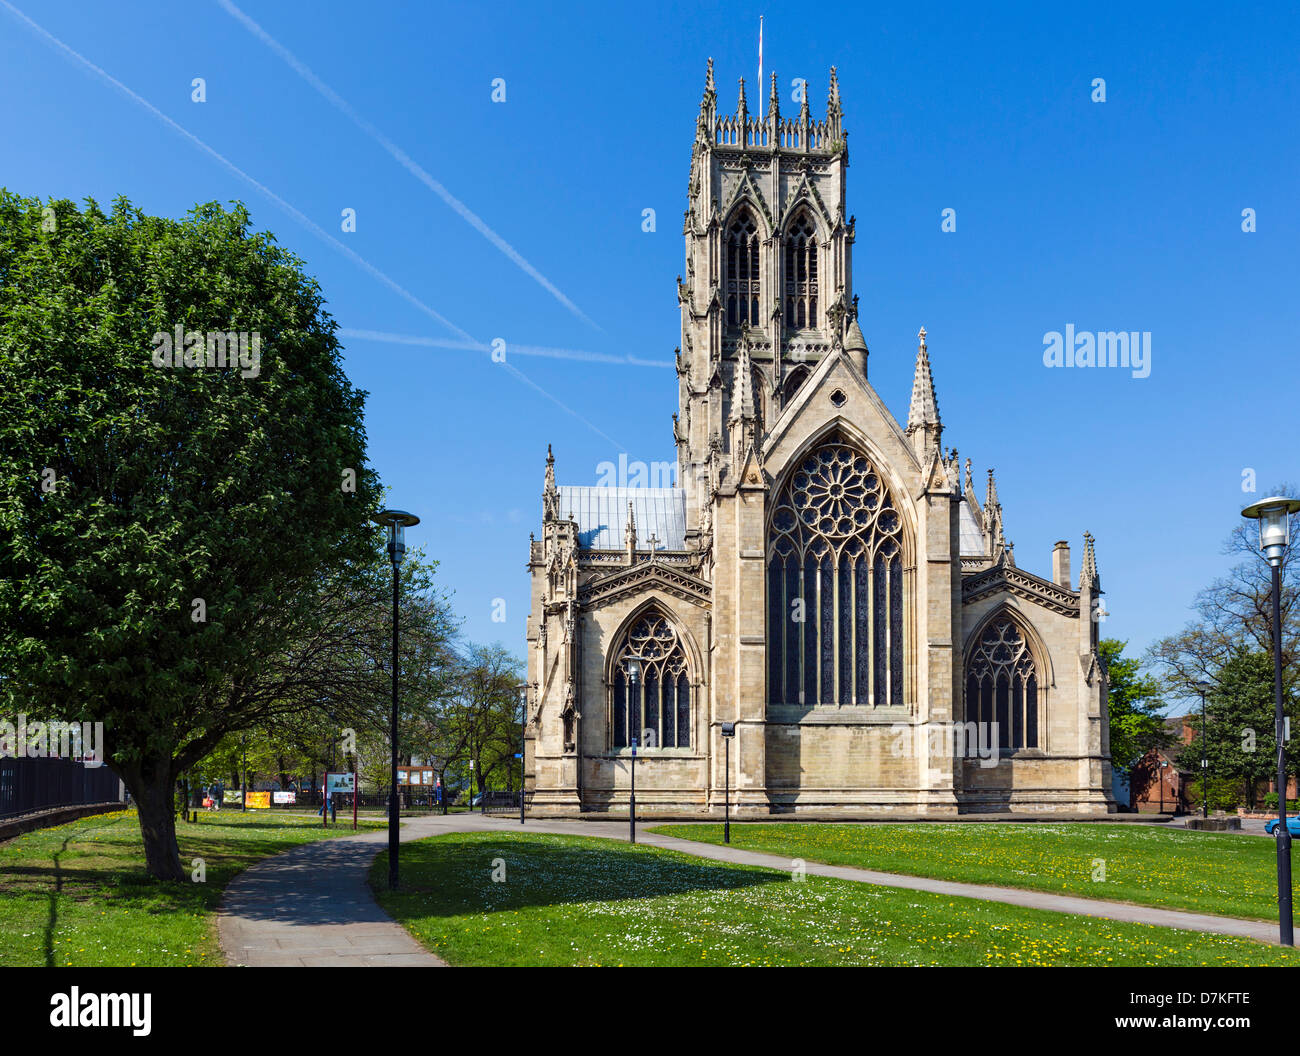 St George's Minster, Doncaster, South Yorkshire, England, UK - Stock Image